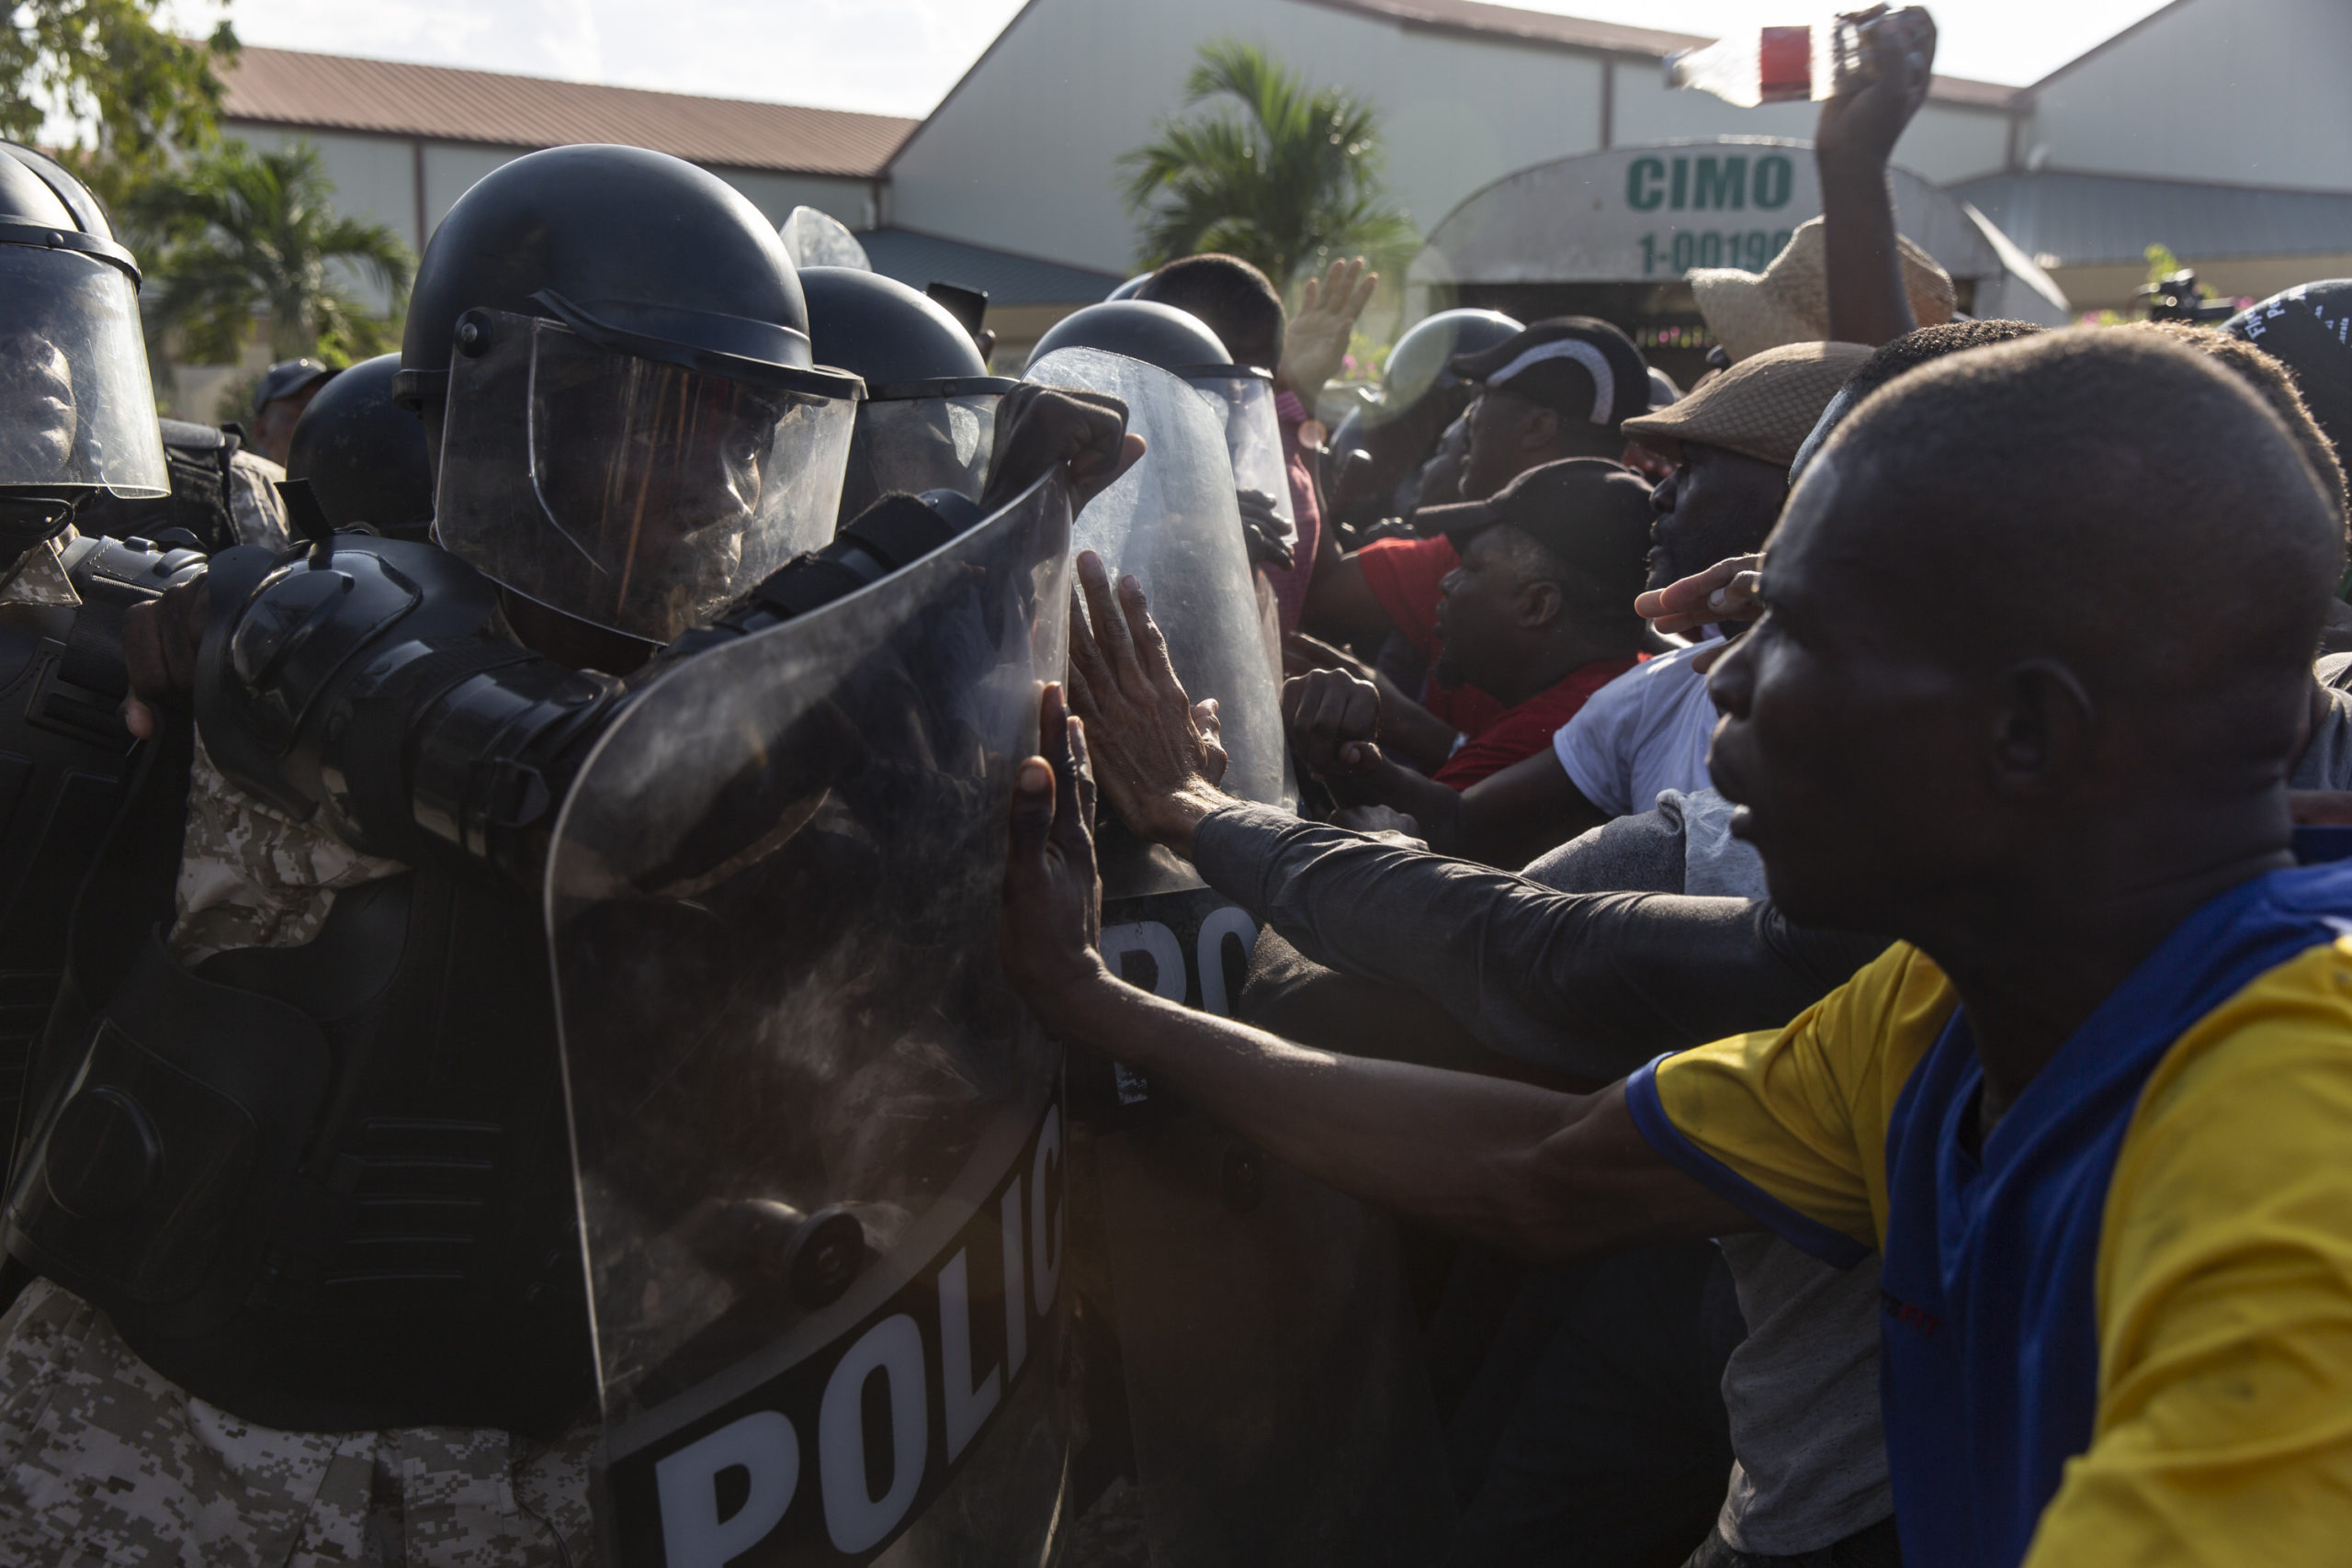 PORT AU PRINCE, HAITI - 2019/12/07: Demonstrators clash with police outside the US Embassy. For over a year tensions has been high in Haiti, widespread governmental corruption and the misuse of Venezuelan loans through the Petro Caribe program has led many people to take to the streets demanding that President Jovenel Moïse steps down. Country wide protests and the threat of violence has brought the nation to a near standstill with many businesses and schools have now been shuttered for months. With both sides digging in there seems no end in sight. (Photo by Adam DelGiudice/SOPA Images/LightRocket via Getty Images)